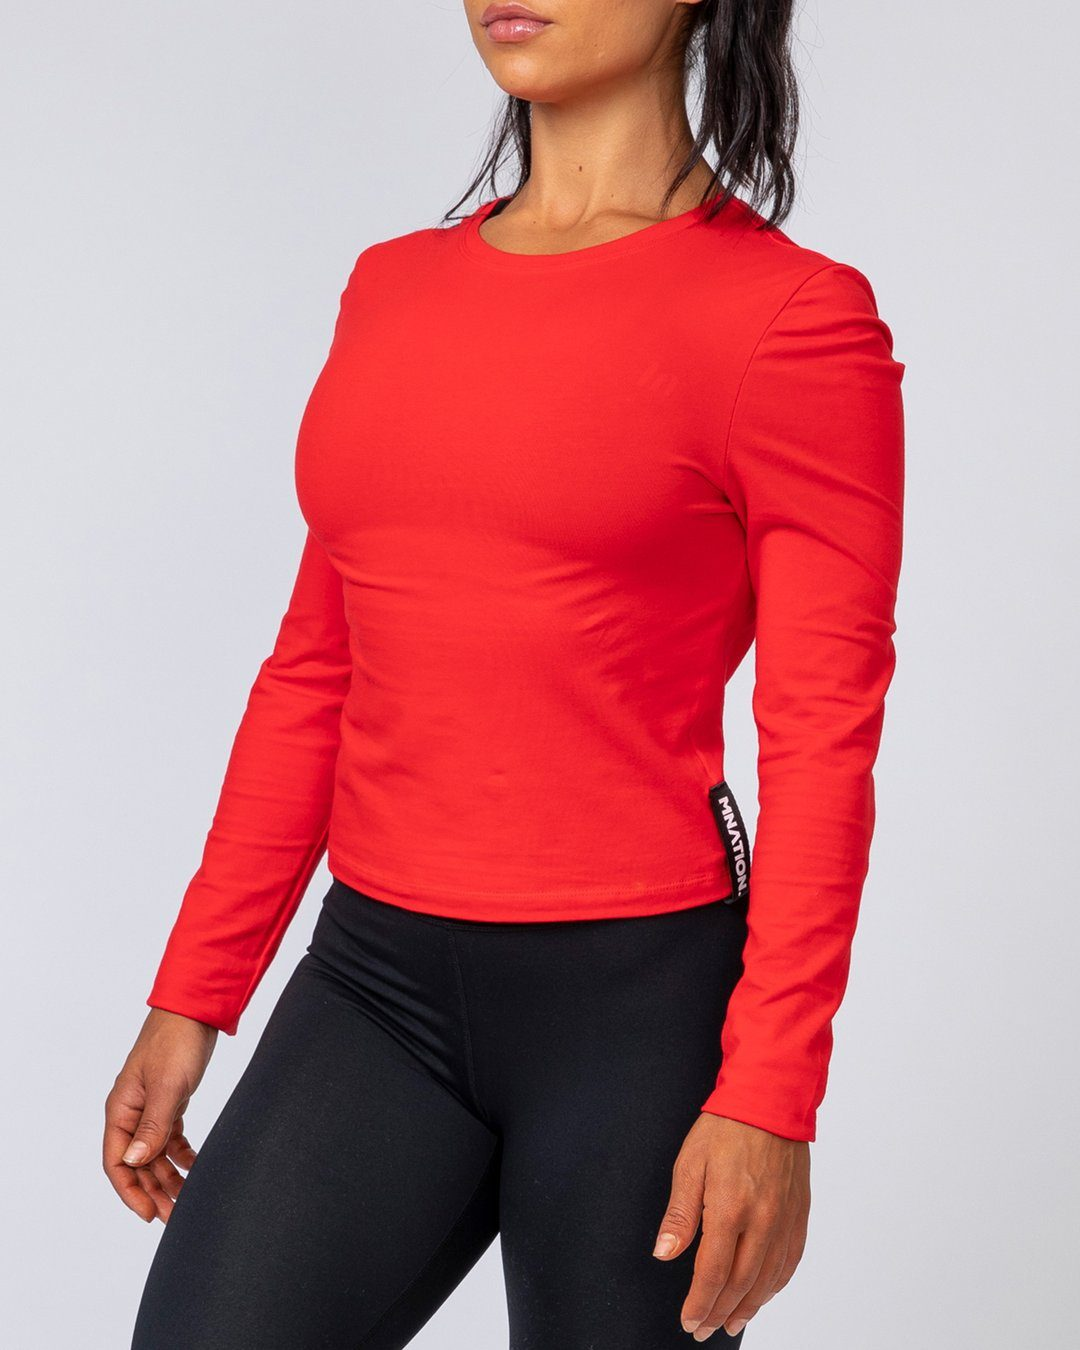 Muscle Nation Women's Long Sleeve - Red